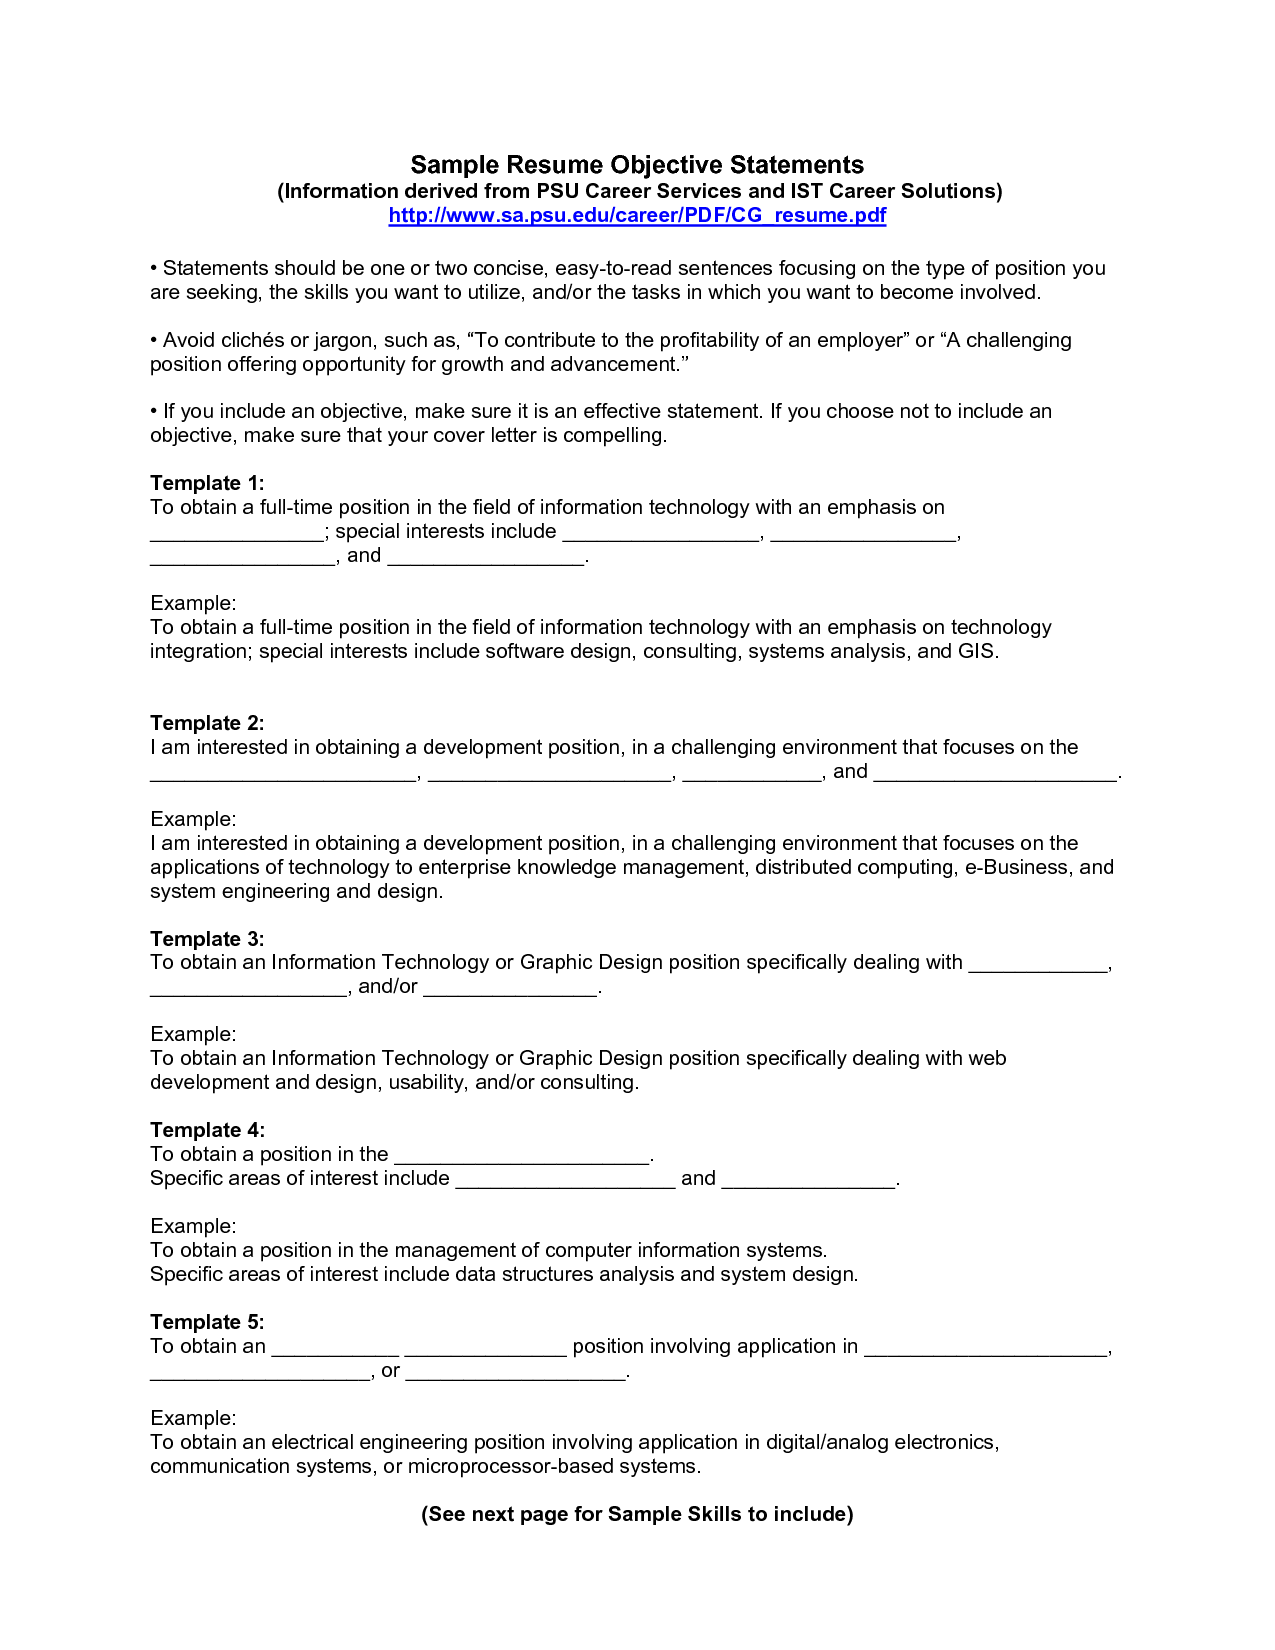 How To Write A Resume Objective Resume Objective Examplesprofessional Objective Resumes